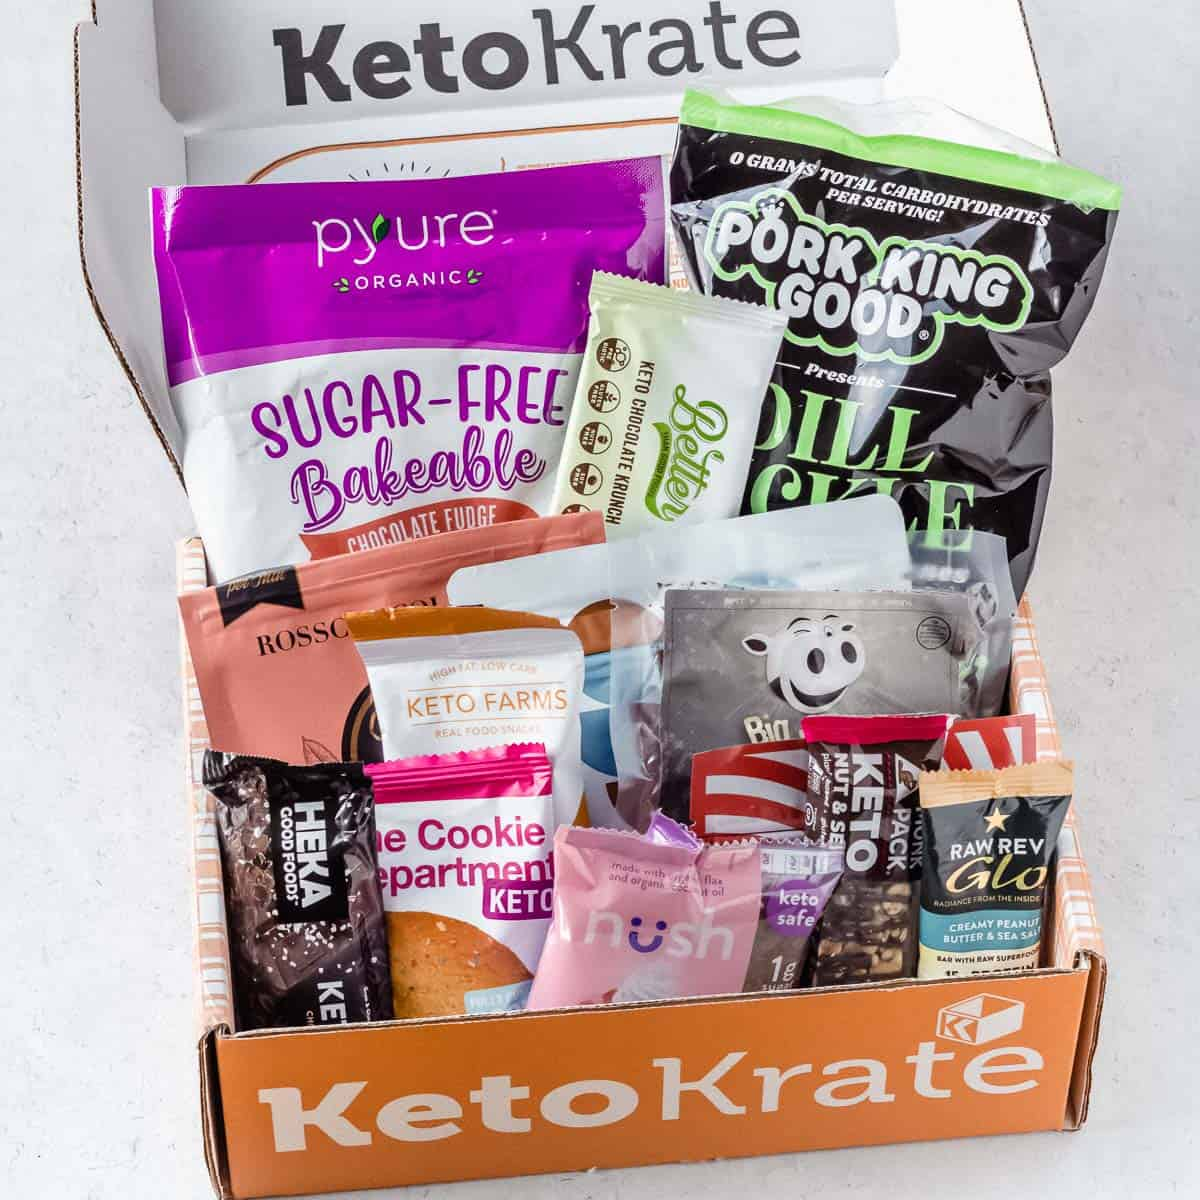 December 2020 Keto Krate items displayed inside of the box